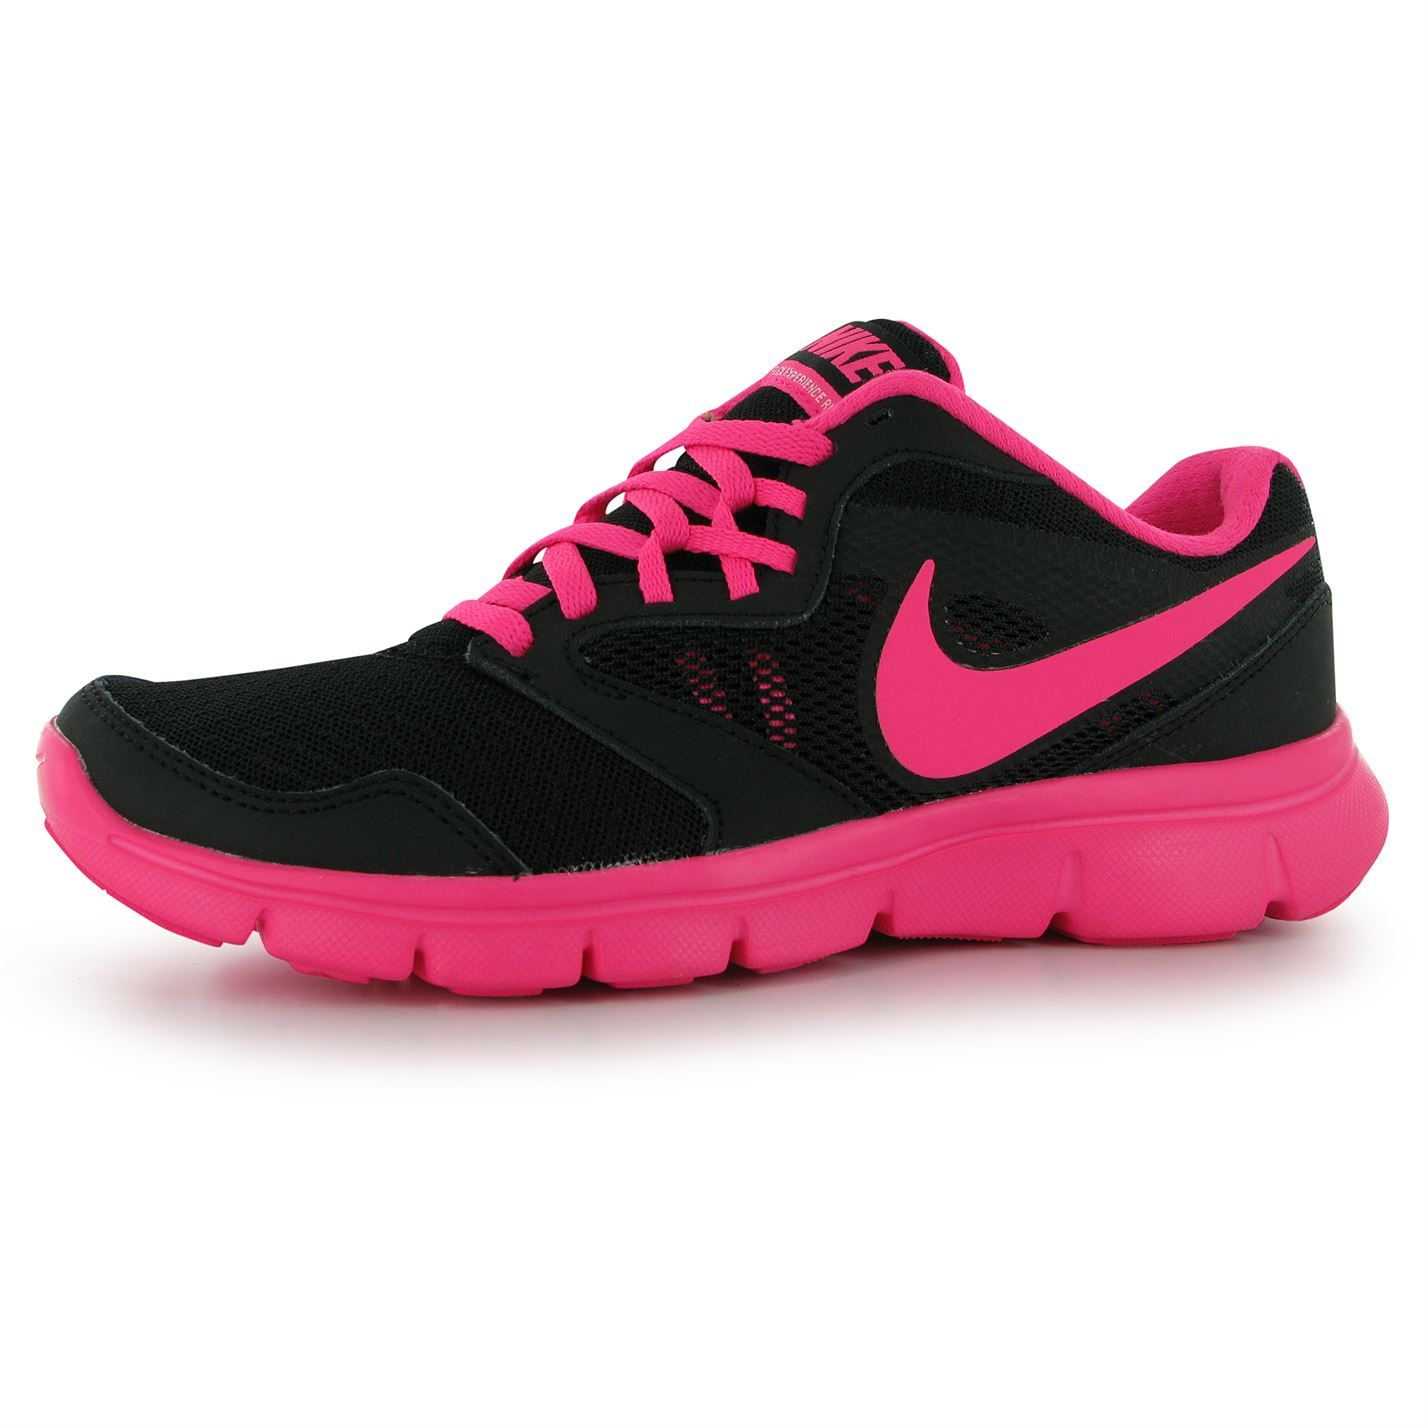 new product 2e265 cc343 ... träningsskor sverige nike free balanza dam atomic röd atomic rosa sonic  gul artic 40676 2eaa1  switzerland nike dual fusion x girls running shoes  oxford ...